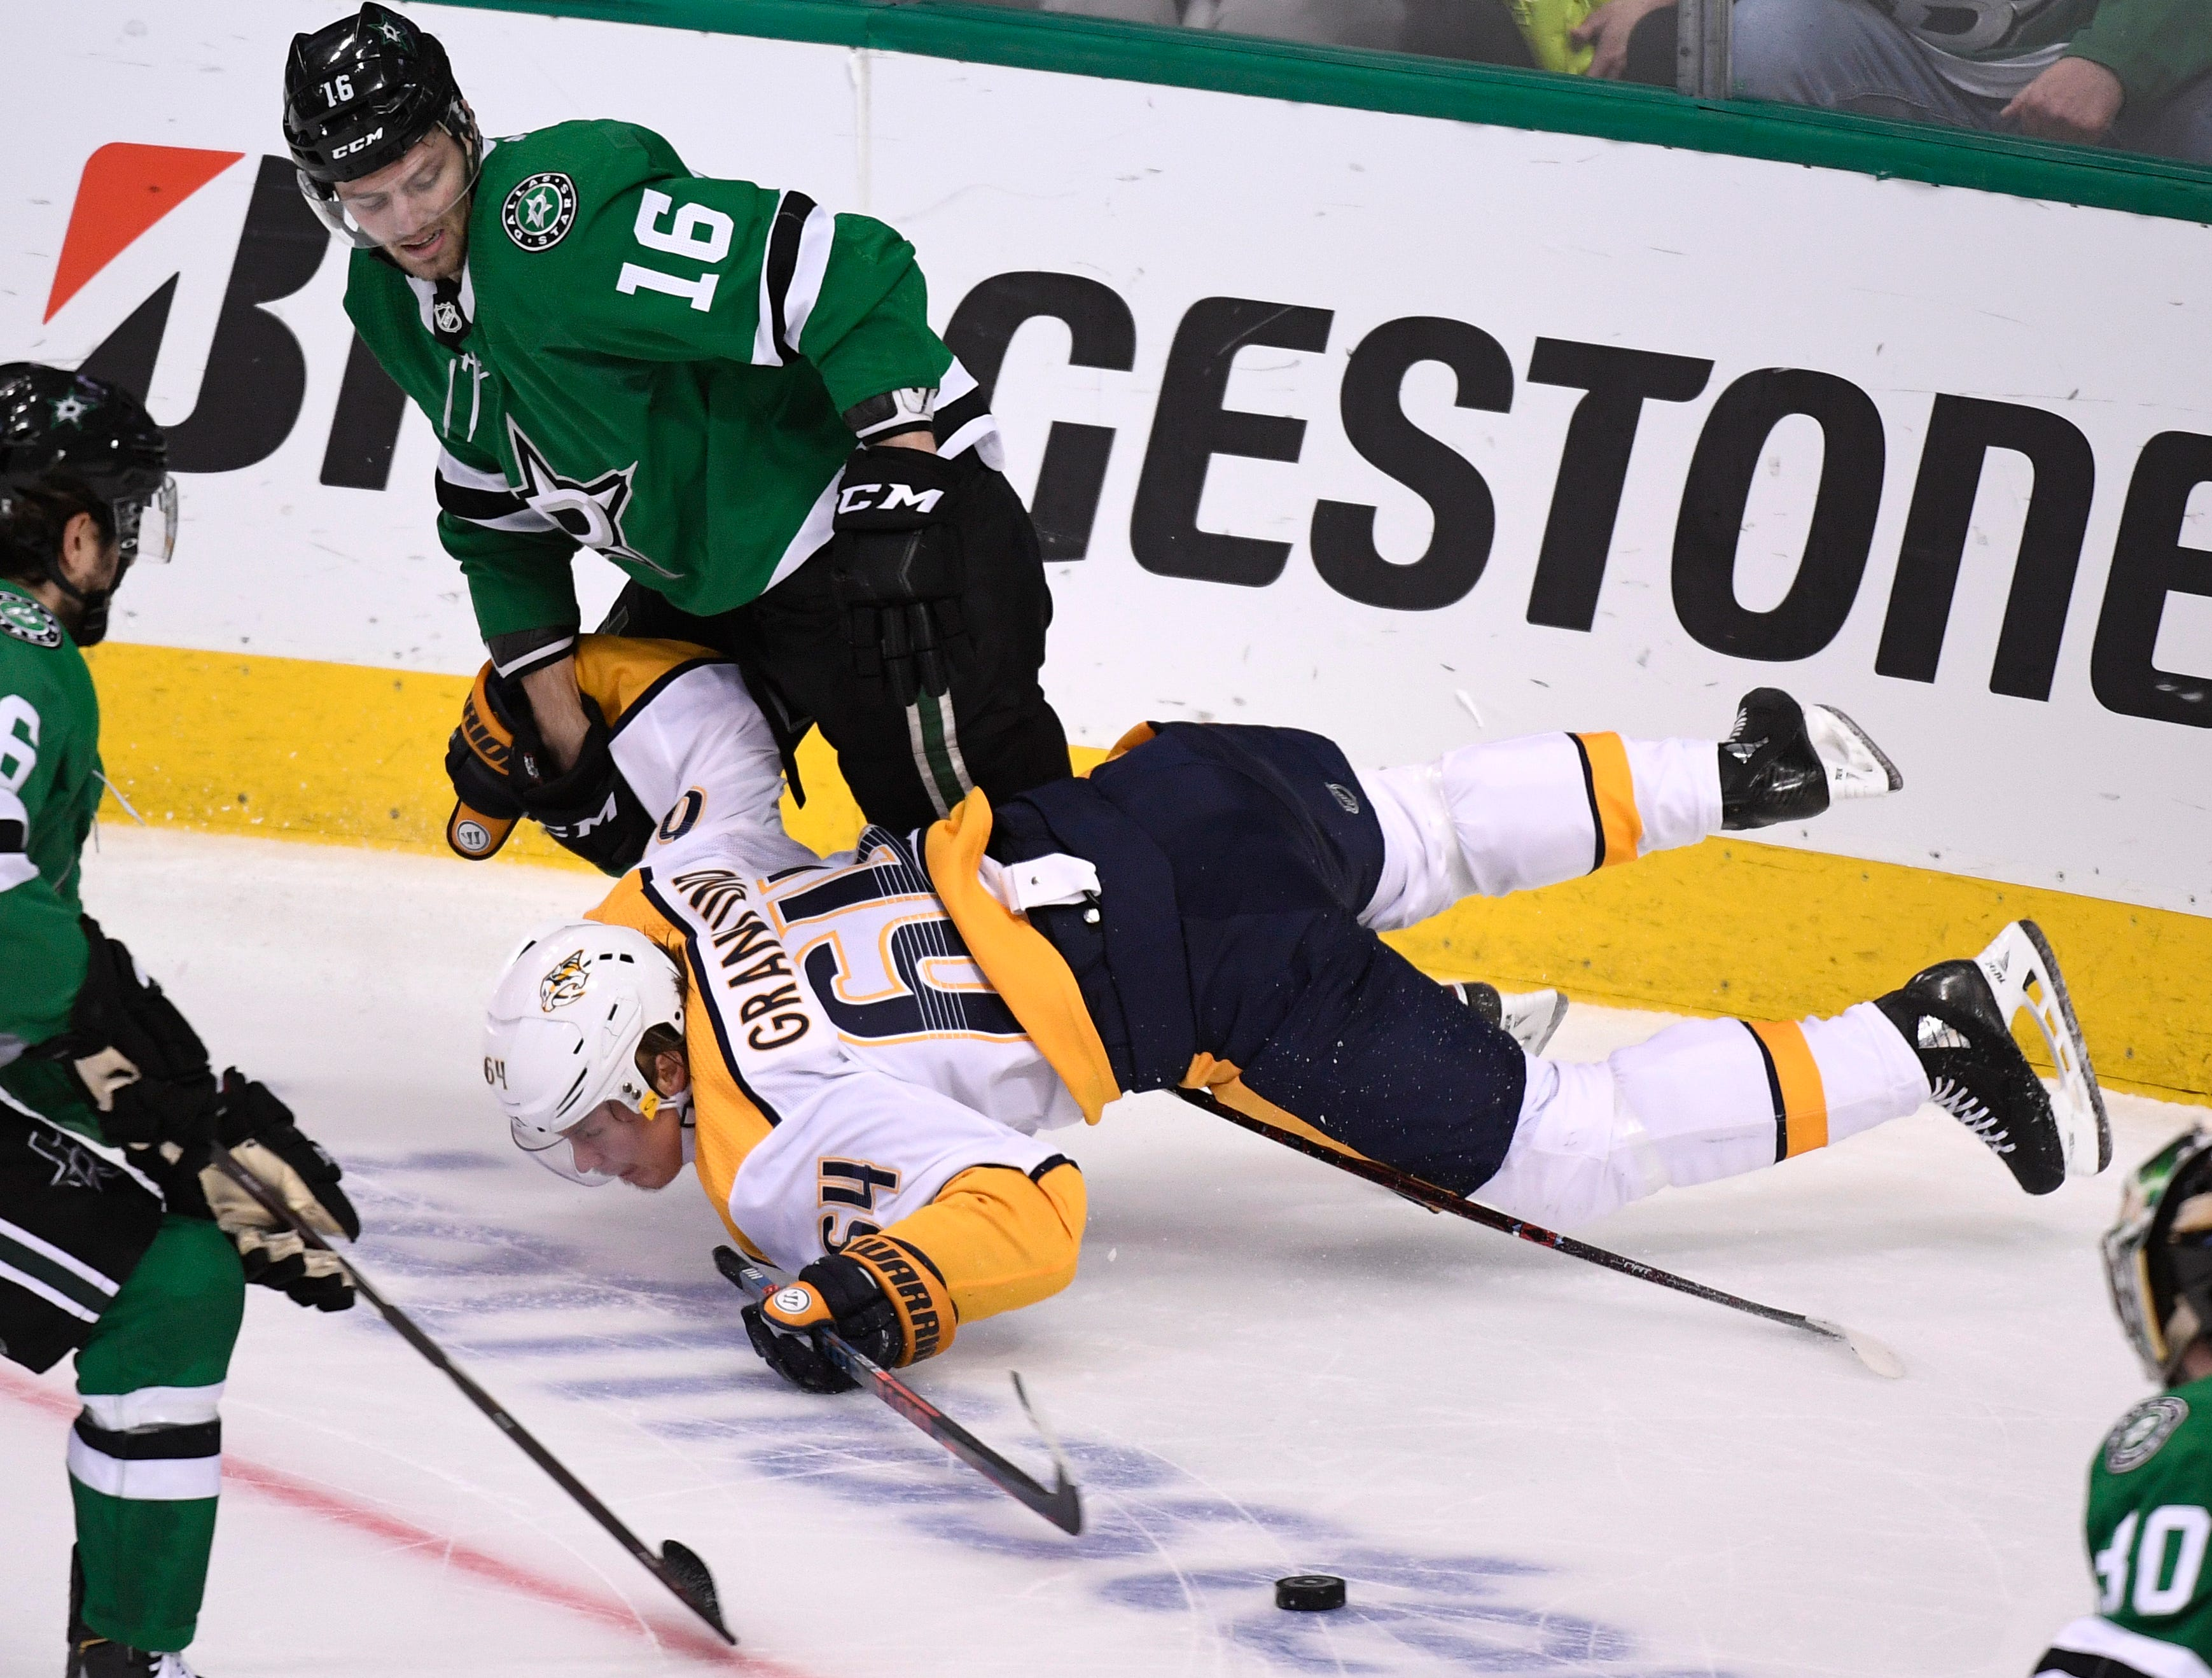 Nashville Predators center Mikael Granlund (64) hits the ice defended by Dallas Stars center Jason Dickinson (16) during the third period of the divisional semifinal game at the American Airlines Center in Dallas, Texas, Monday, April 22, 2019.